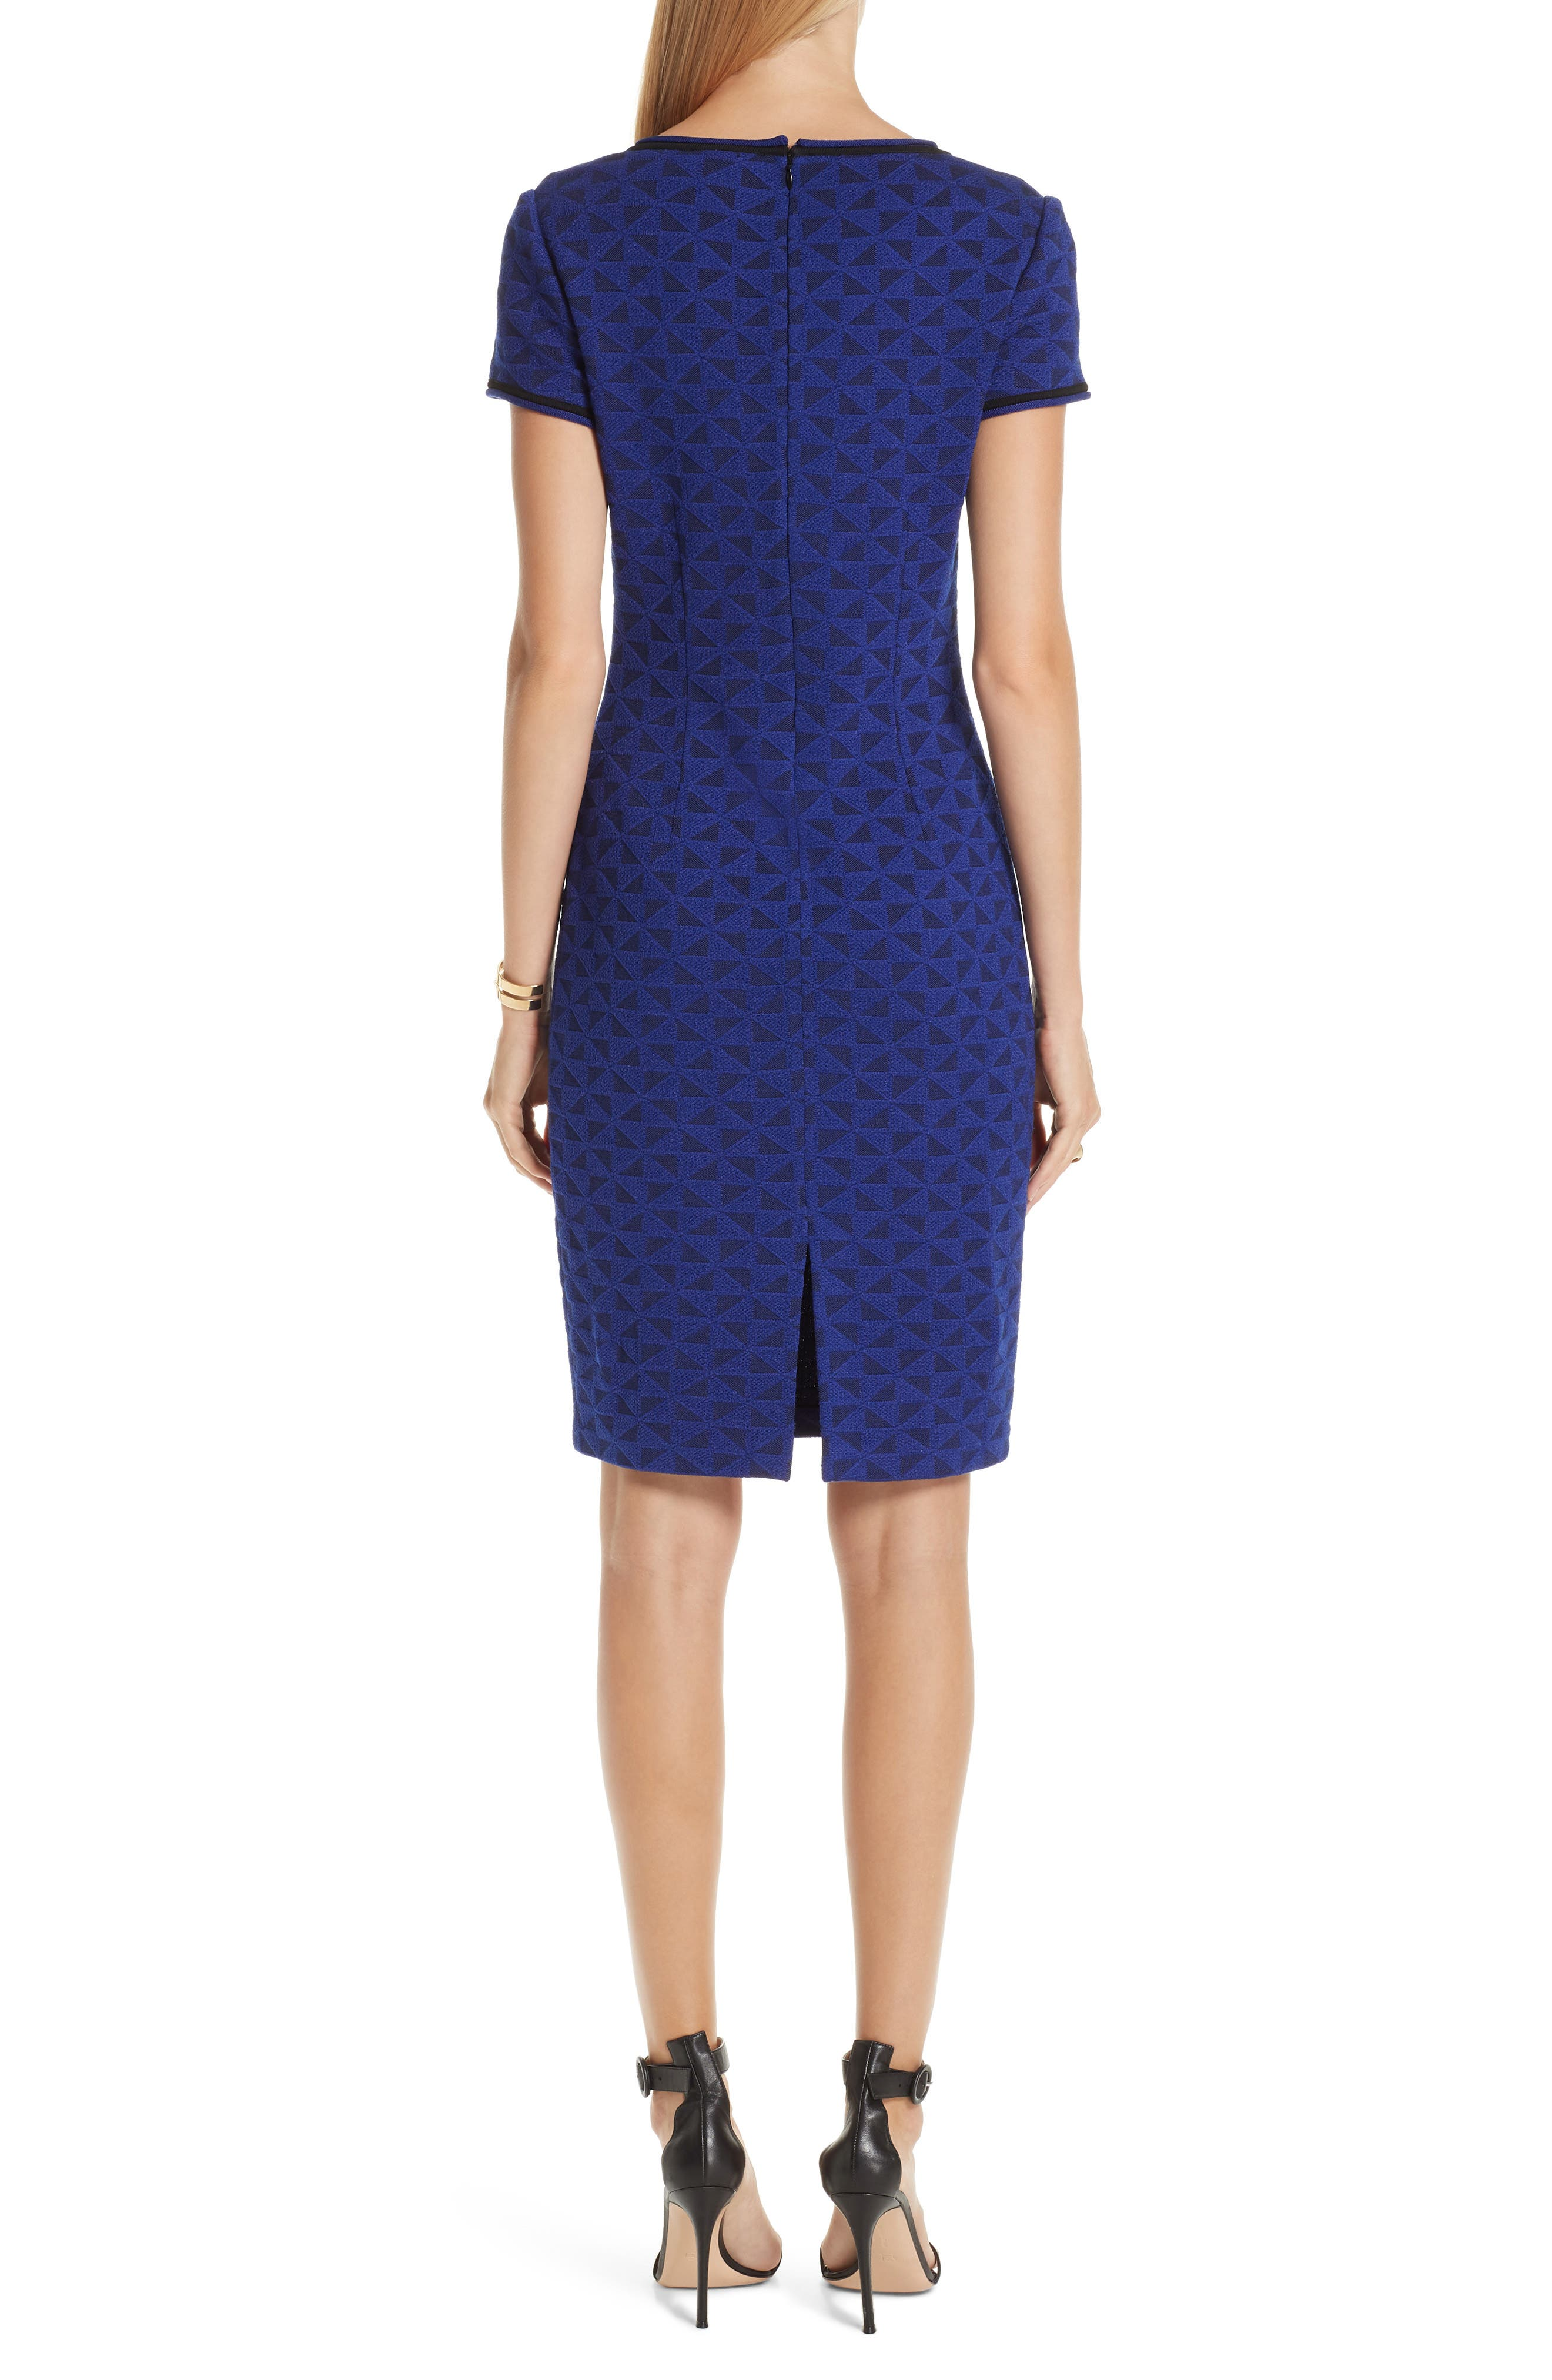 ST. JOHN COLLECTION, Micro Geo Blister Knit Sheath Dress, Alternate thumbnail 2, color, CAVIAR/ SAPPHIRE